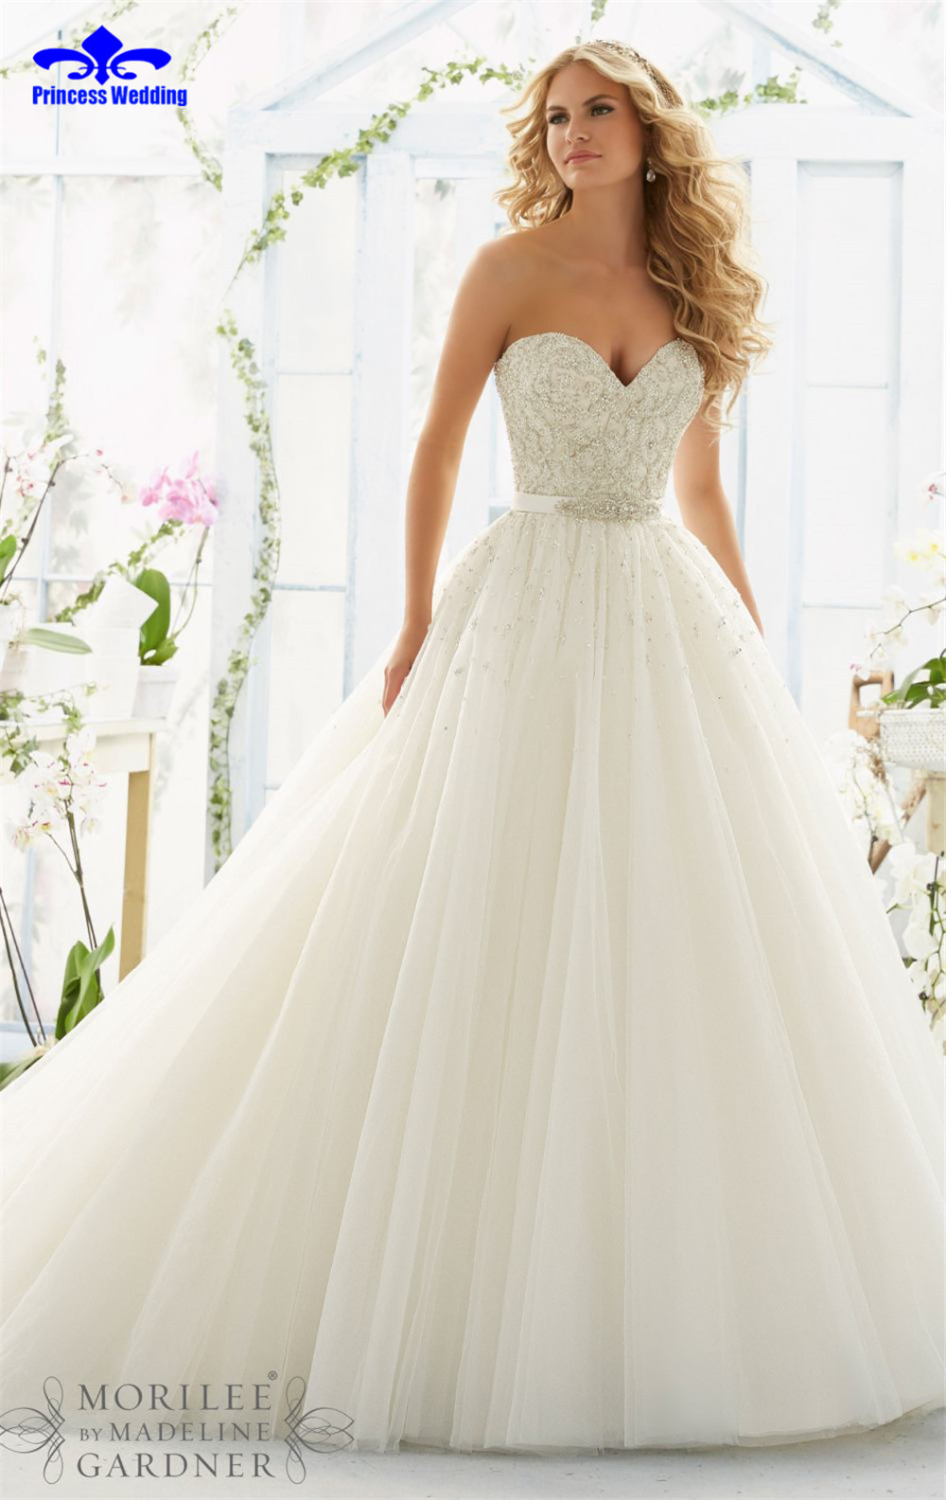 Ball Gown Wedding Dresses 2017 With Bling : Bling luxury crystals wedding dress gown bridal ball